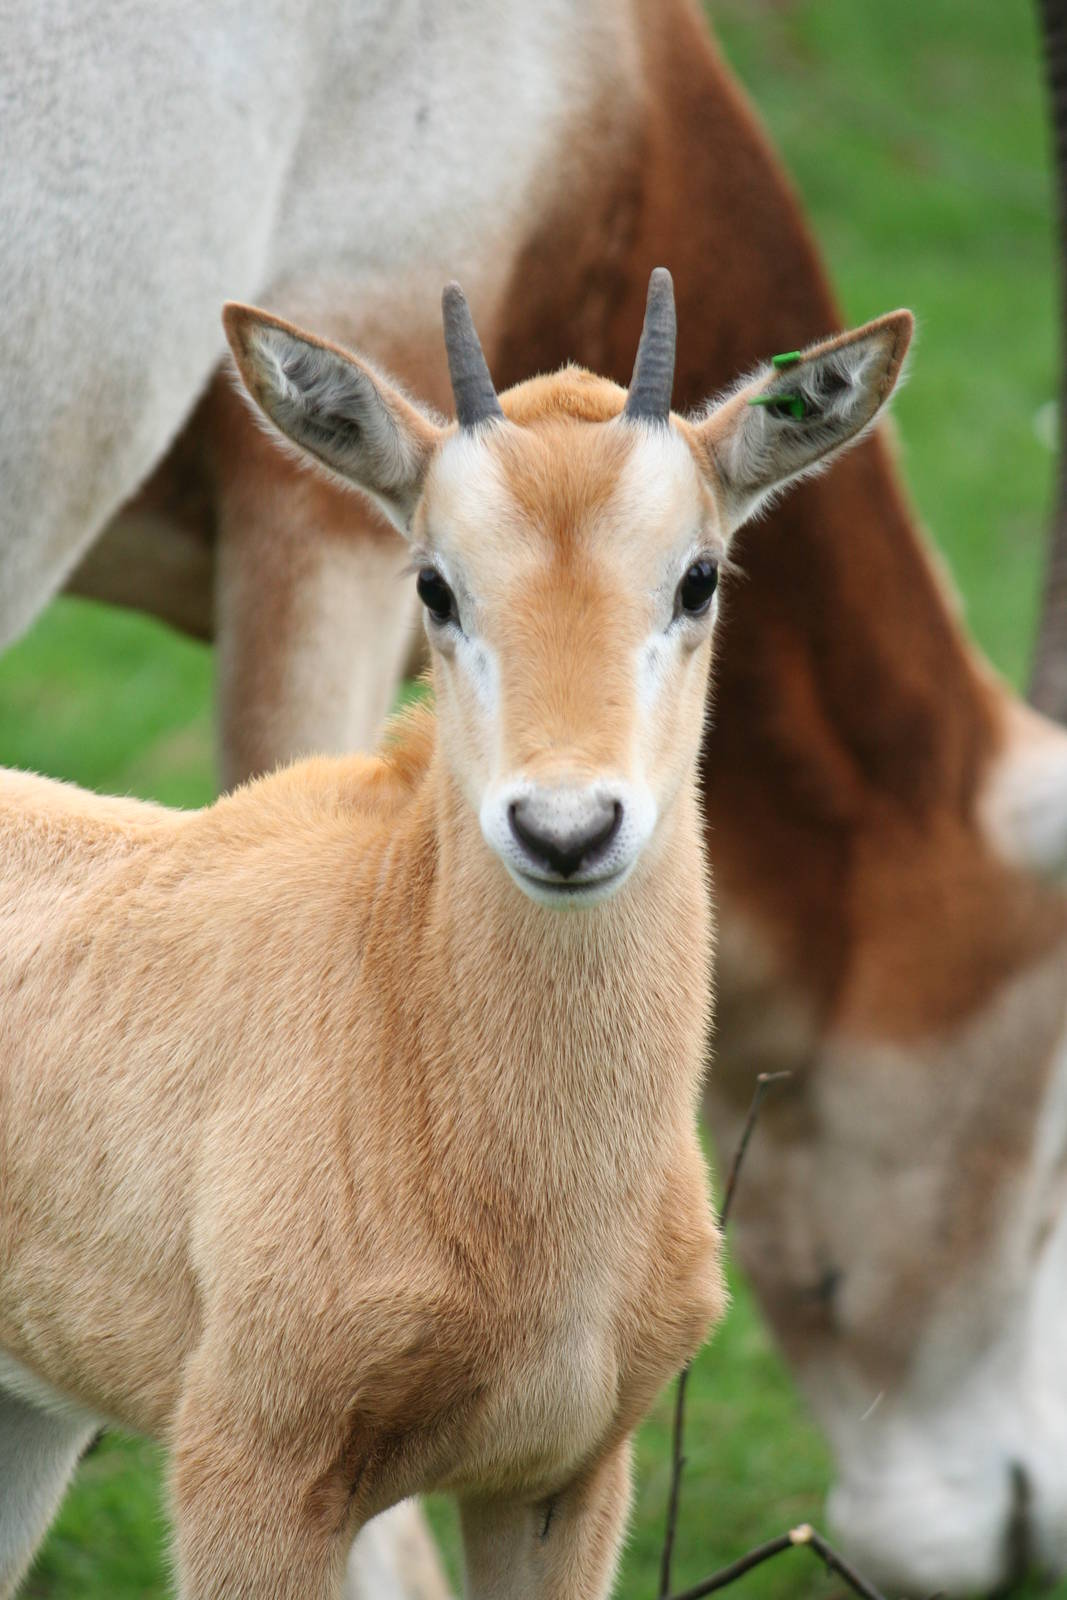 https://www.zoochat.com/community/media/scimitar-horned-oryx-calf.108091/full?d=1280694454